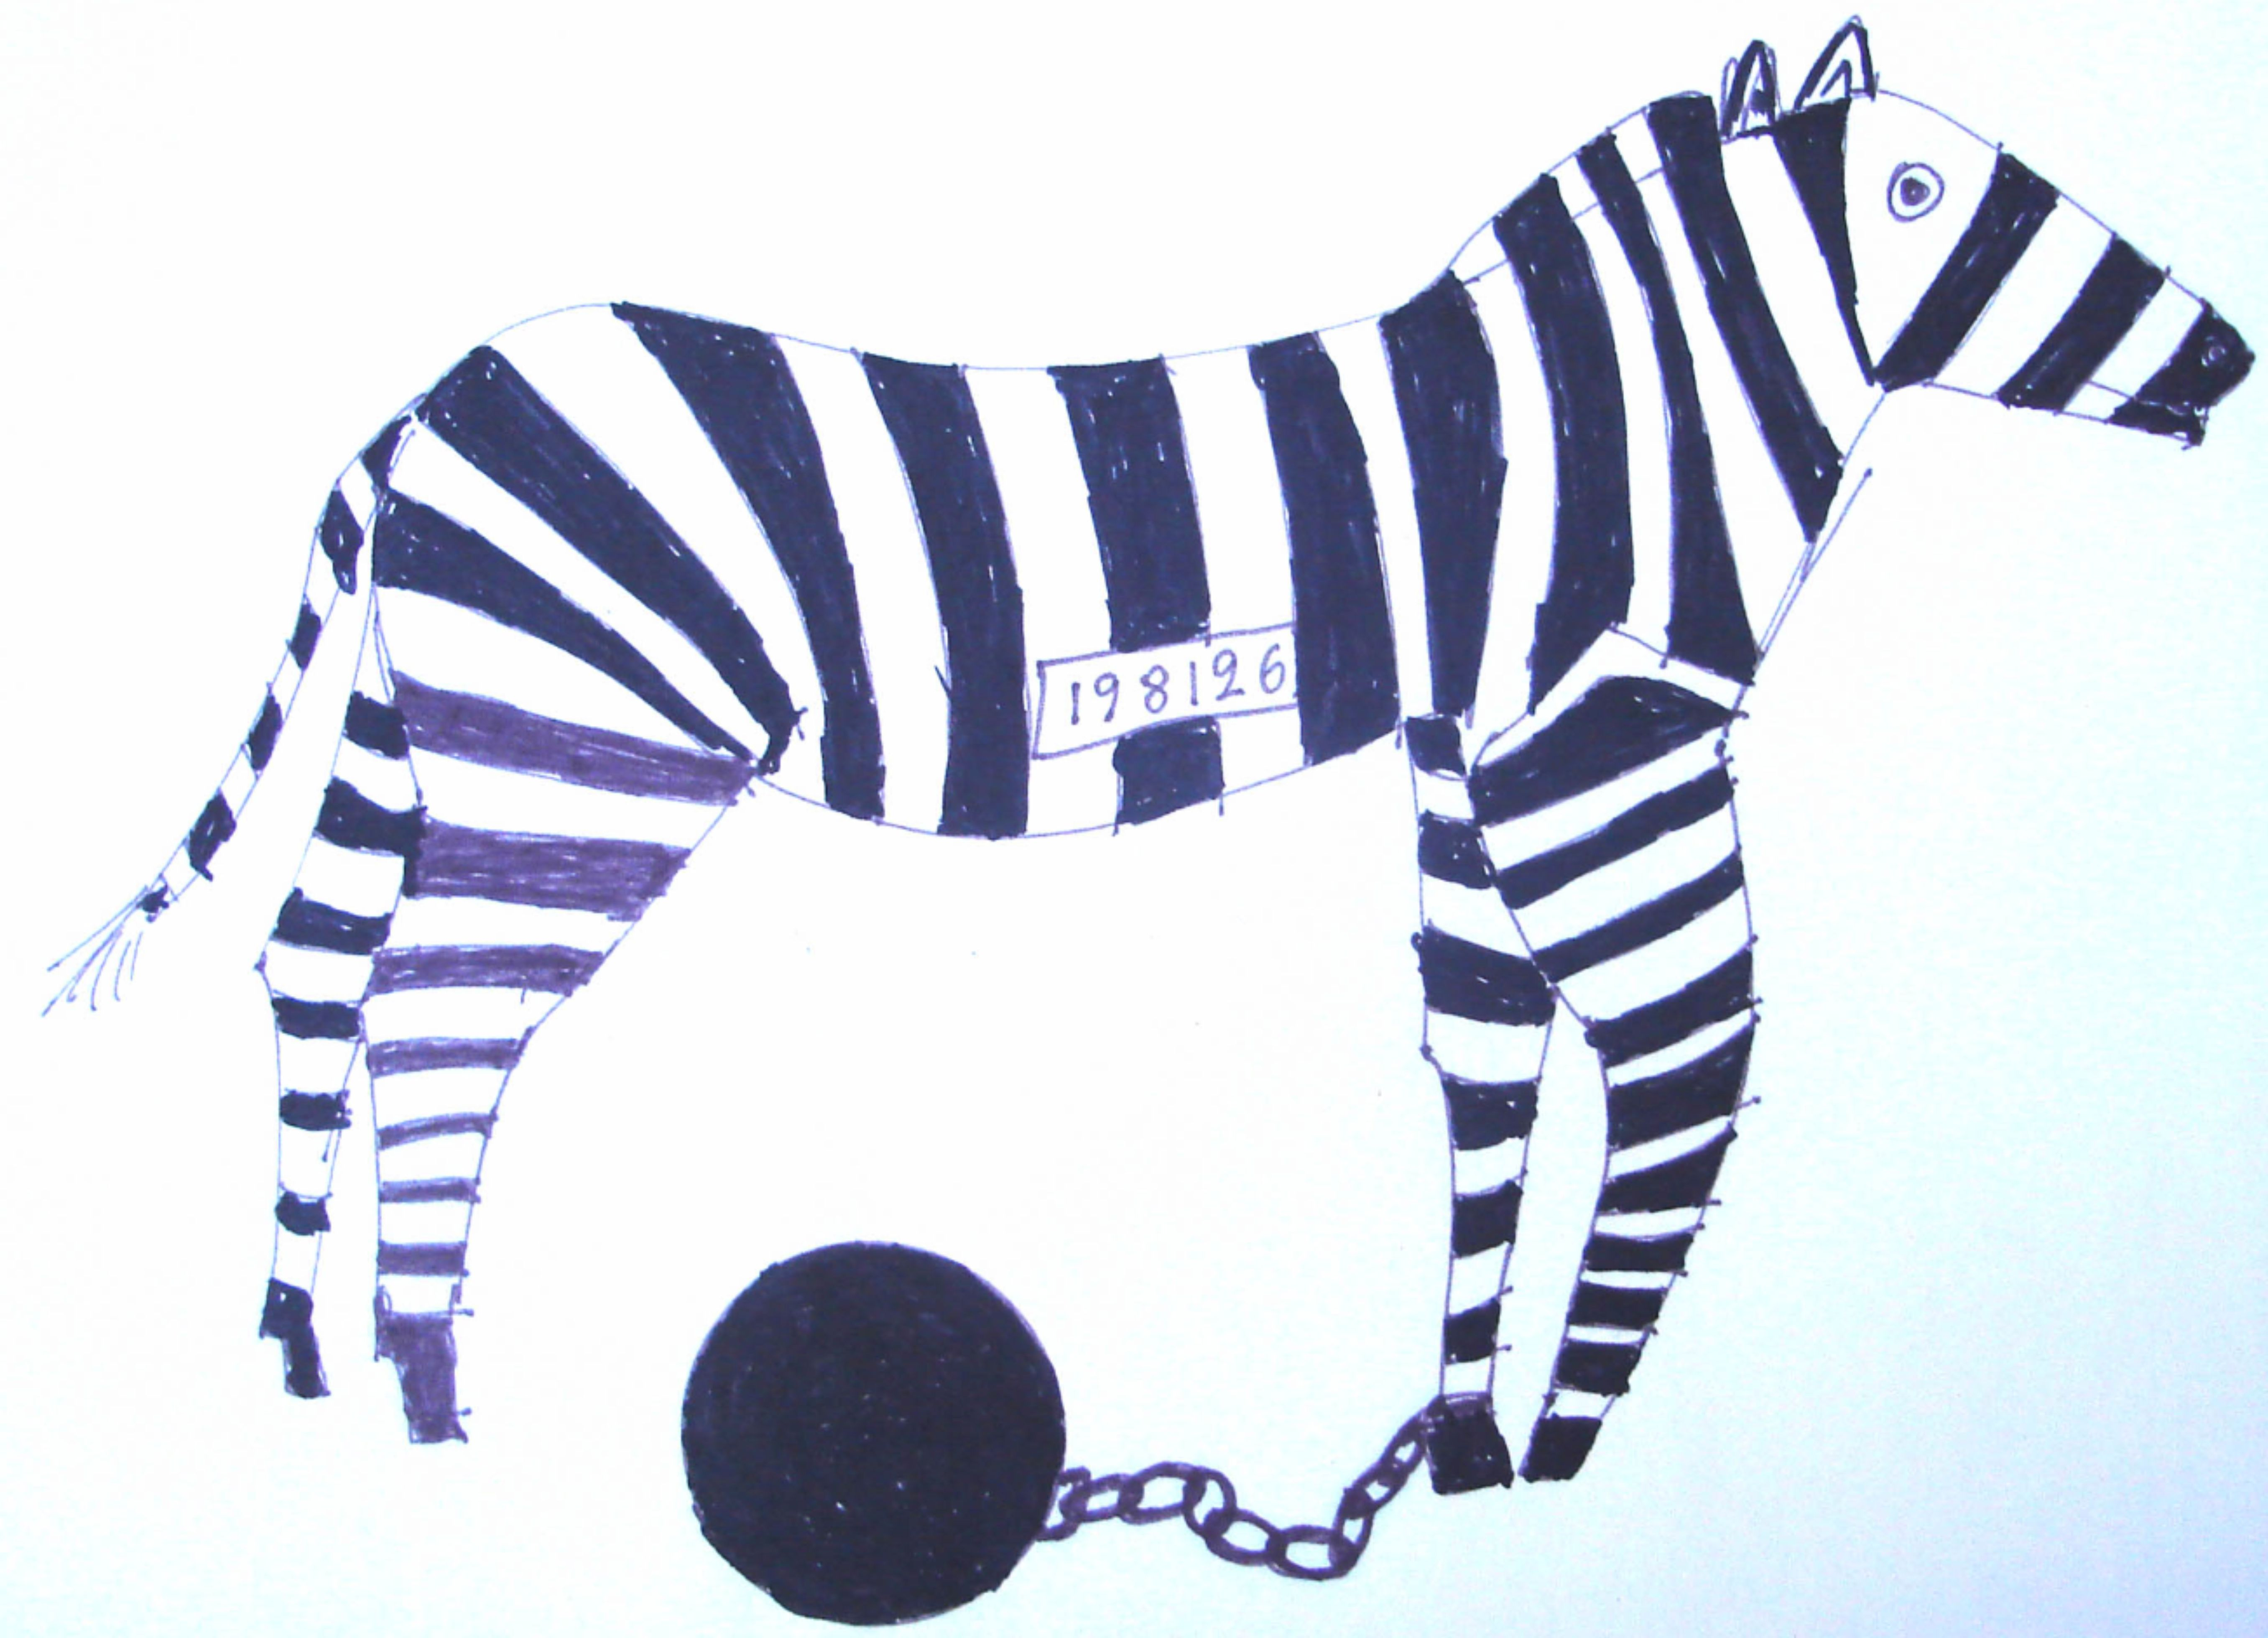 Imprisoned Zebra